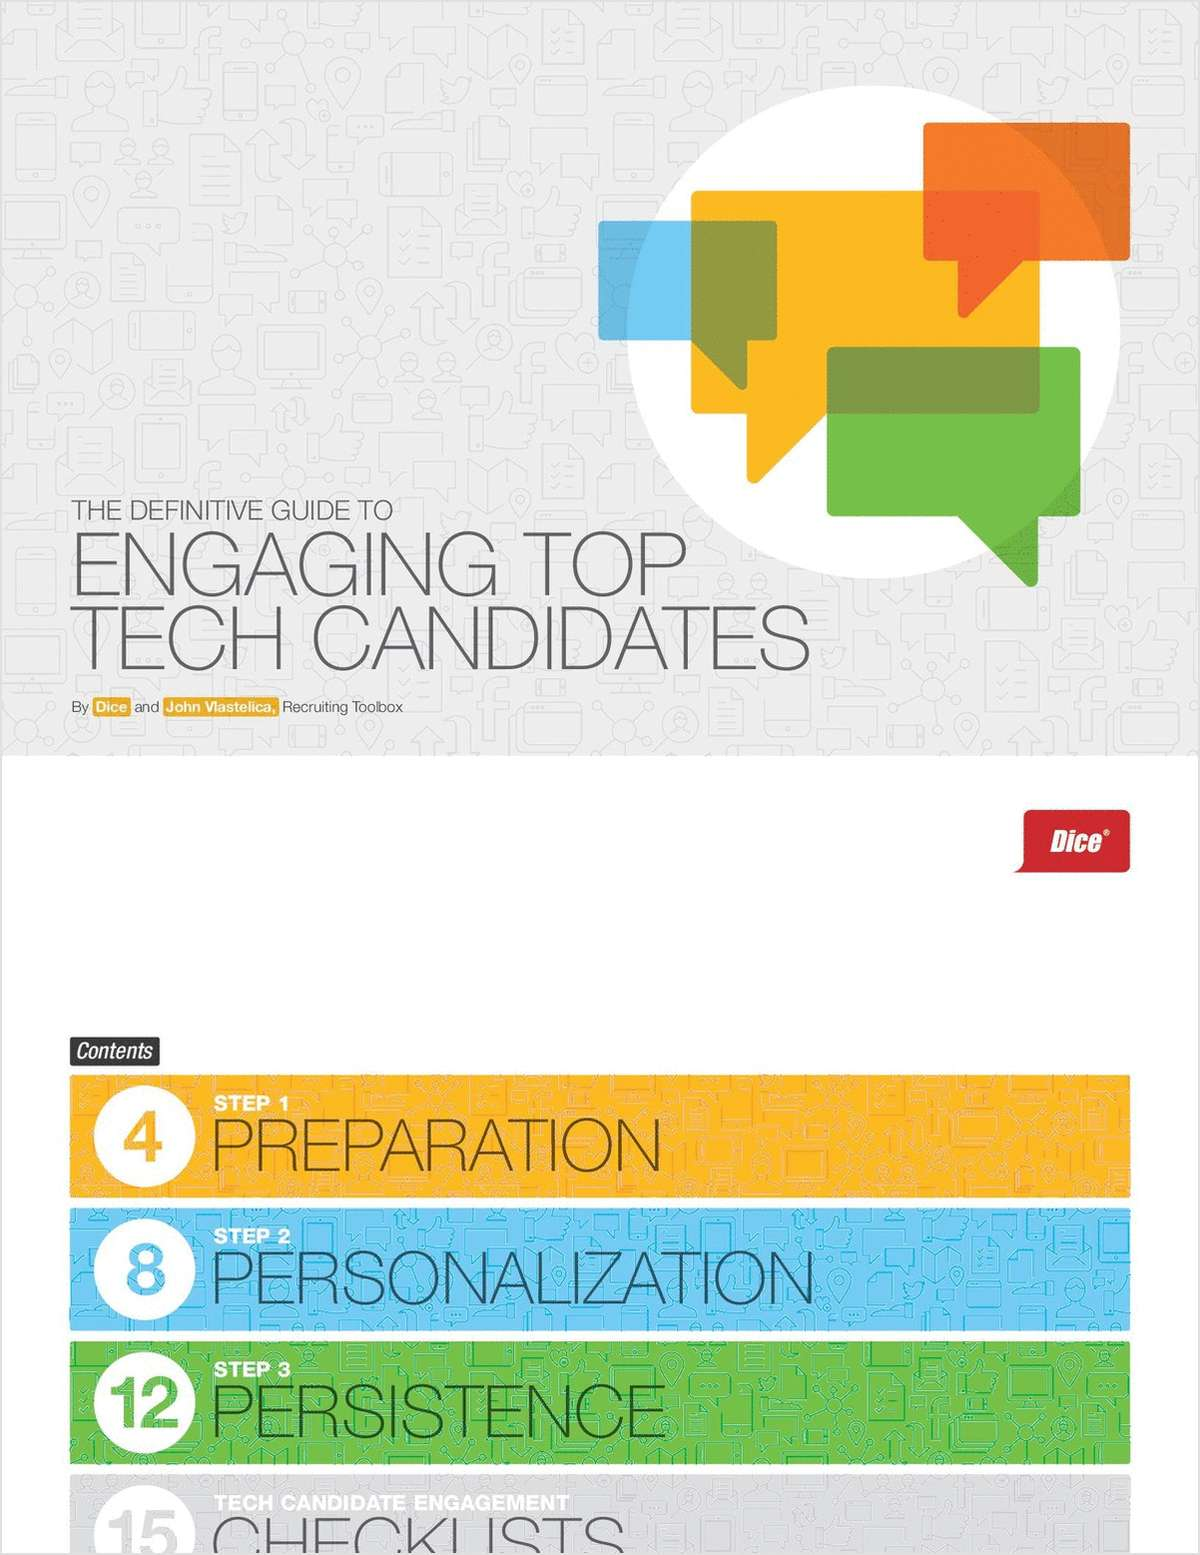 The Definitive Guide to Engaging Tech Candidates